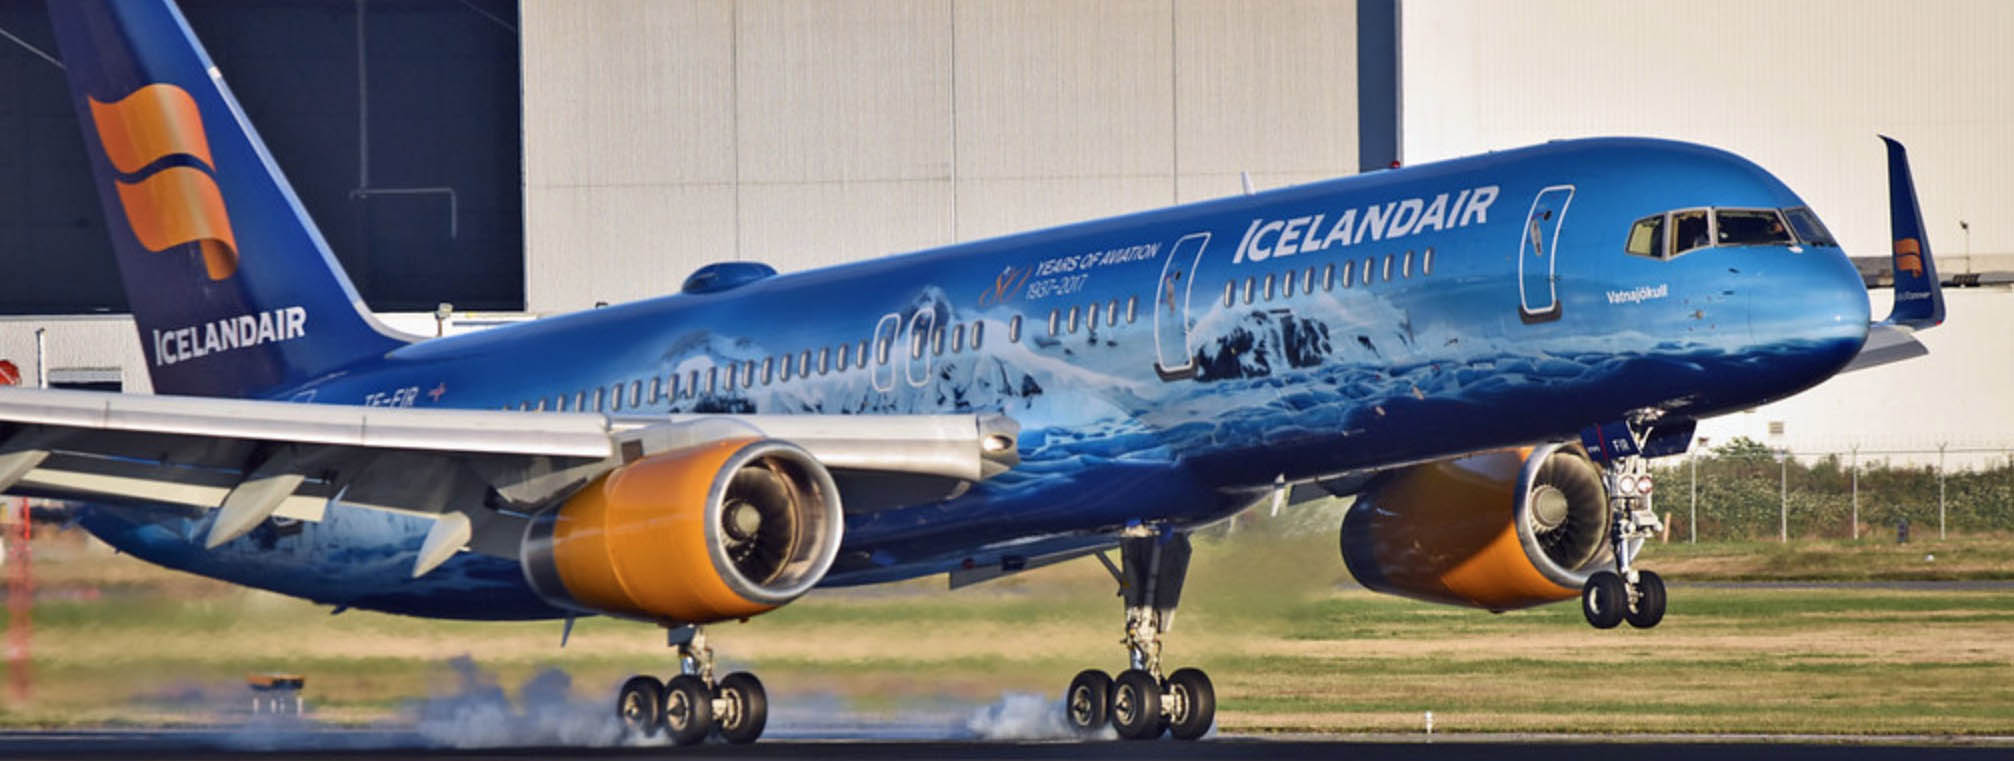 Iceland Air Boeing 757 on touchdown